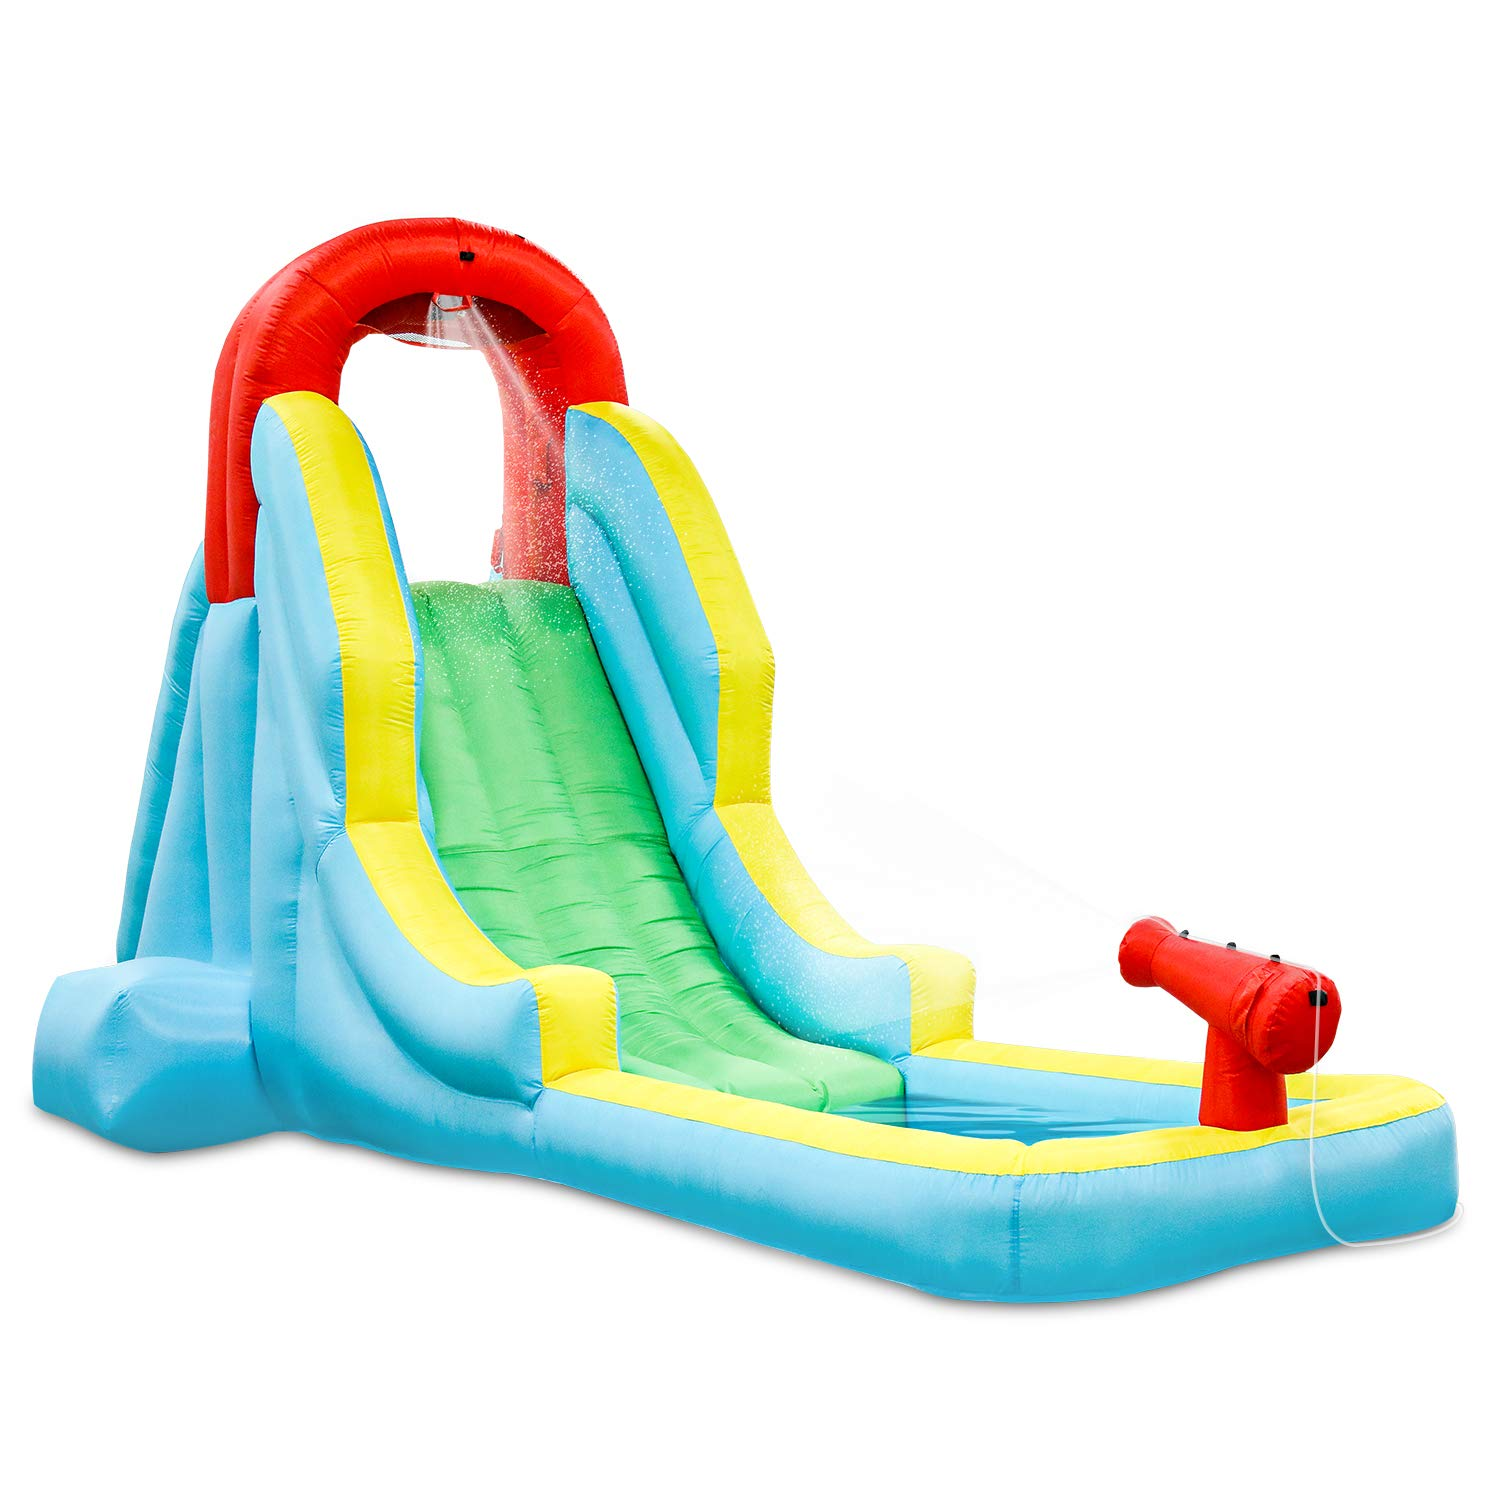 Deluxe Inflatable Water Slide Park - Heavy-Duty Nylon for Outdoor Fun - Climbing Wall, Slide, & Small Splash Pool - Easy to Set Up & Inflate with Included Air Pump & Carrying Case by Sunny & Fun (Image #1)